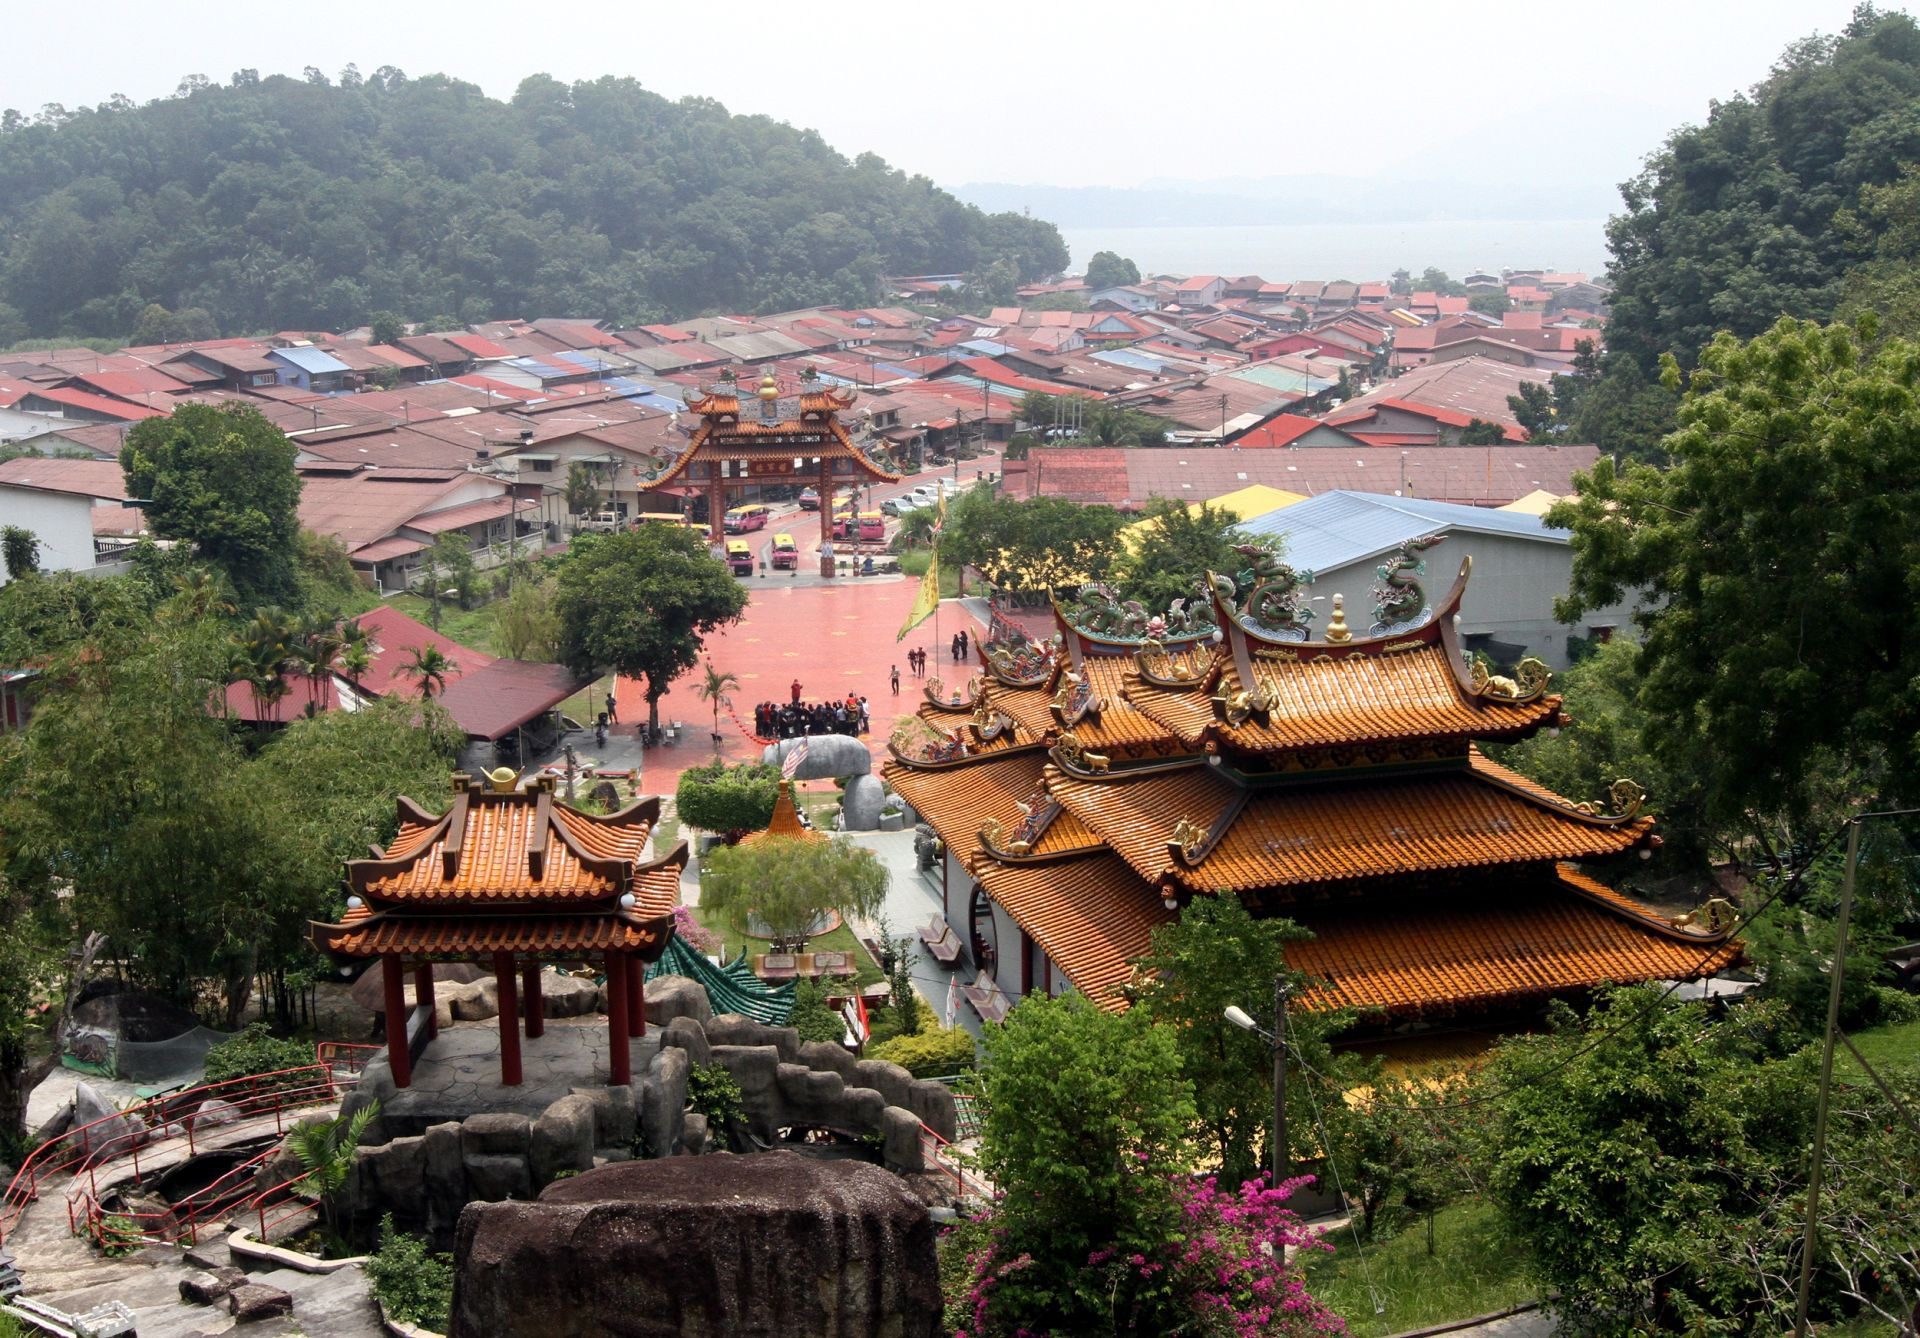 Worth the effort: It might take some time and effort, but climb up the stairs towards the back of Fu Lin Kong temple to gain access to a beautiful view of the island's landscape.